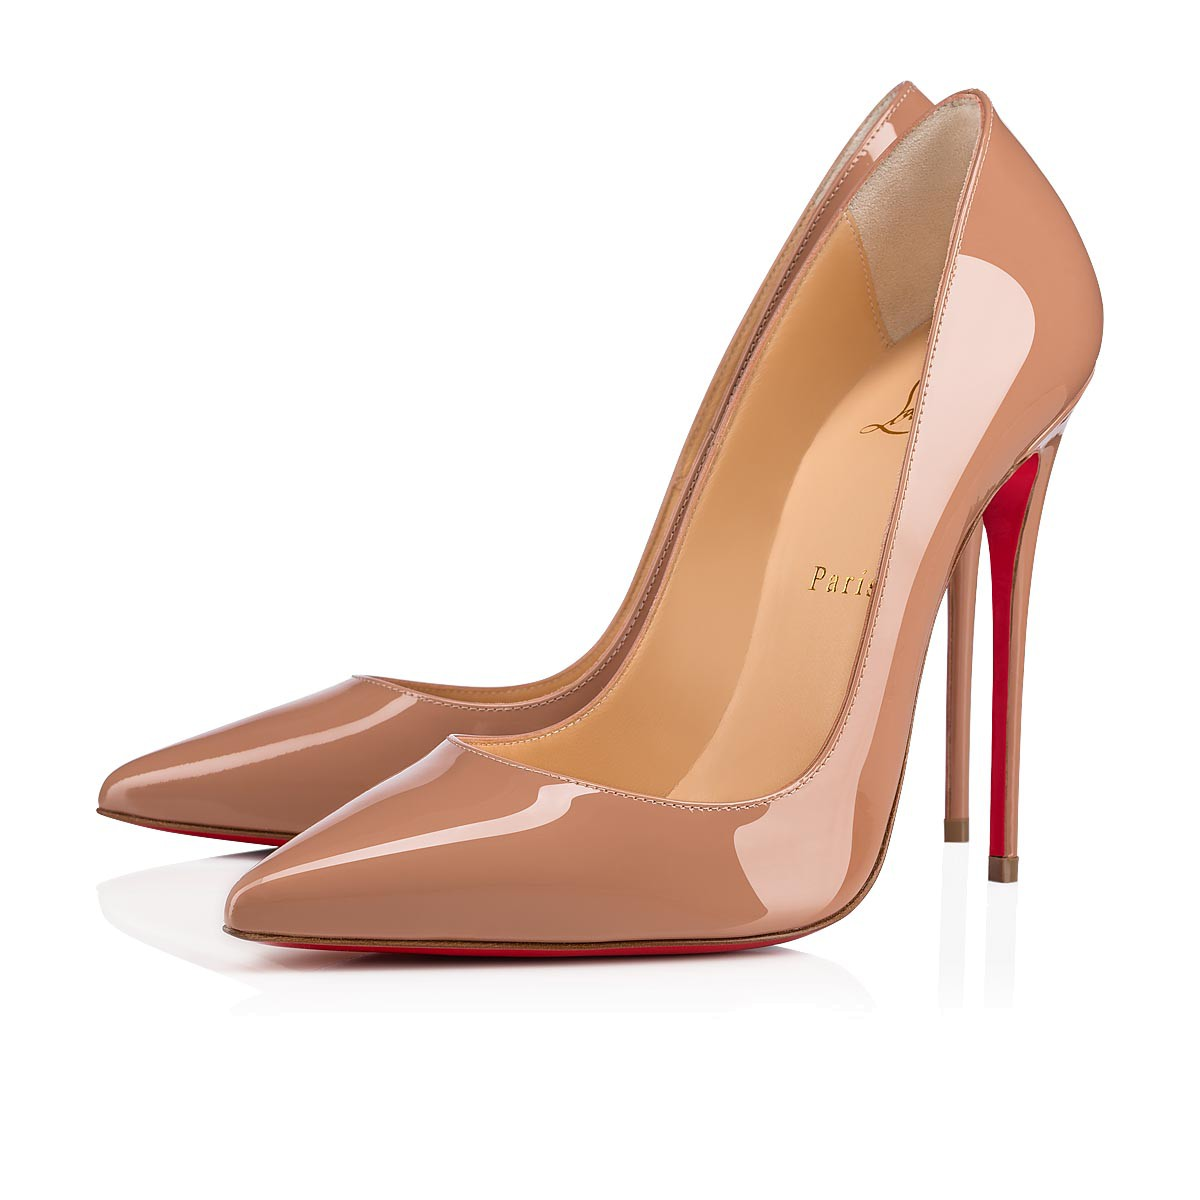 e7c6b6992d6e So Kate 120 Nude Patent Leather - Women Shoes - Christian Louboutin